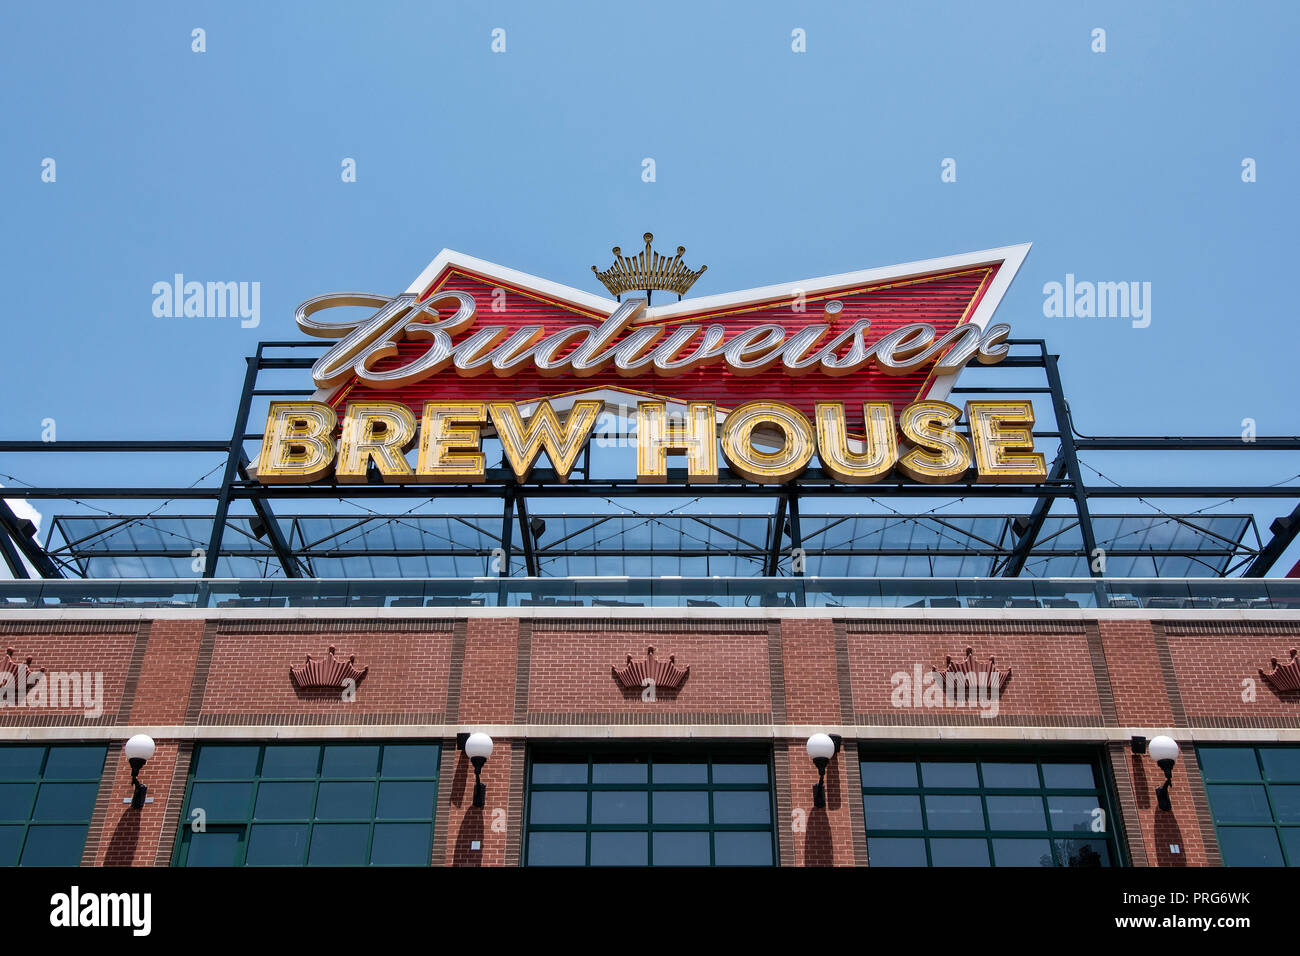 Budweiser Brew House in Busch Stadium, home of the St. Louis Cardinals, Downtown St. Louis, Missouri, USA - Stock Image